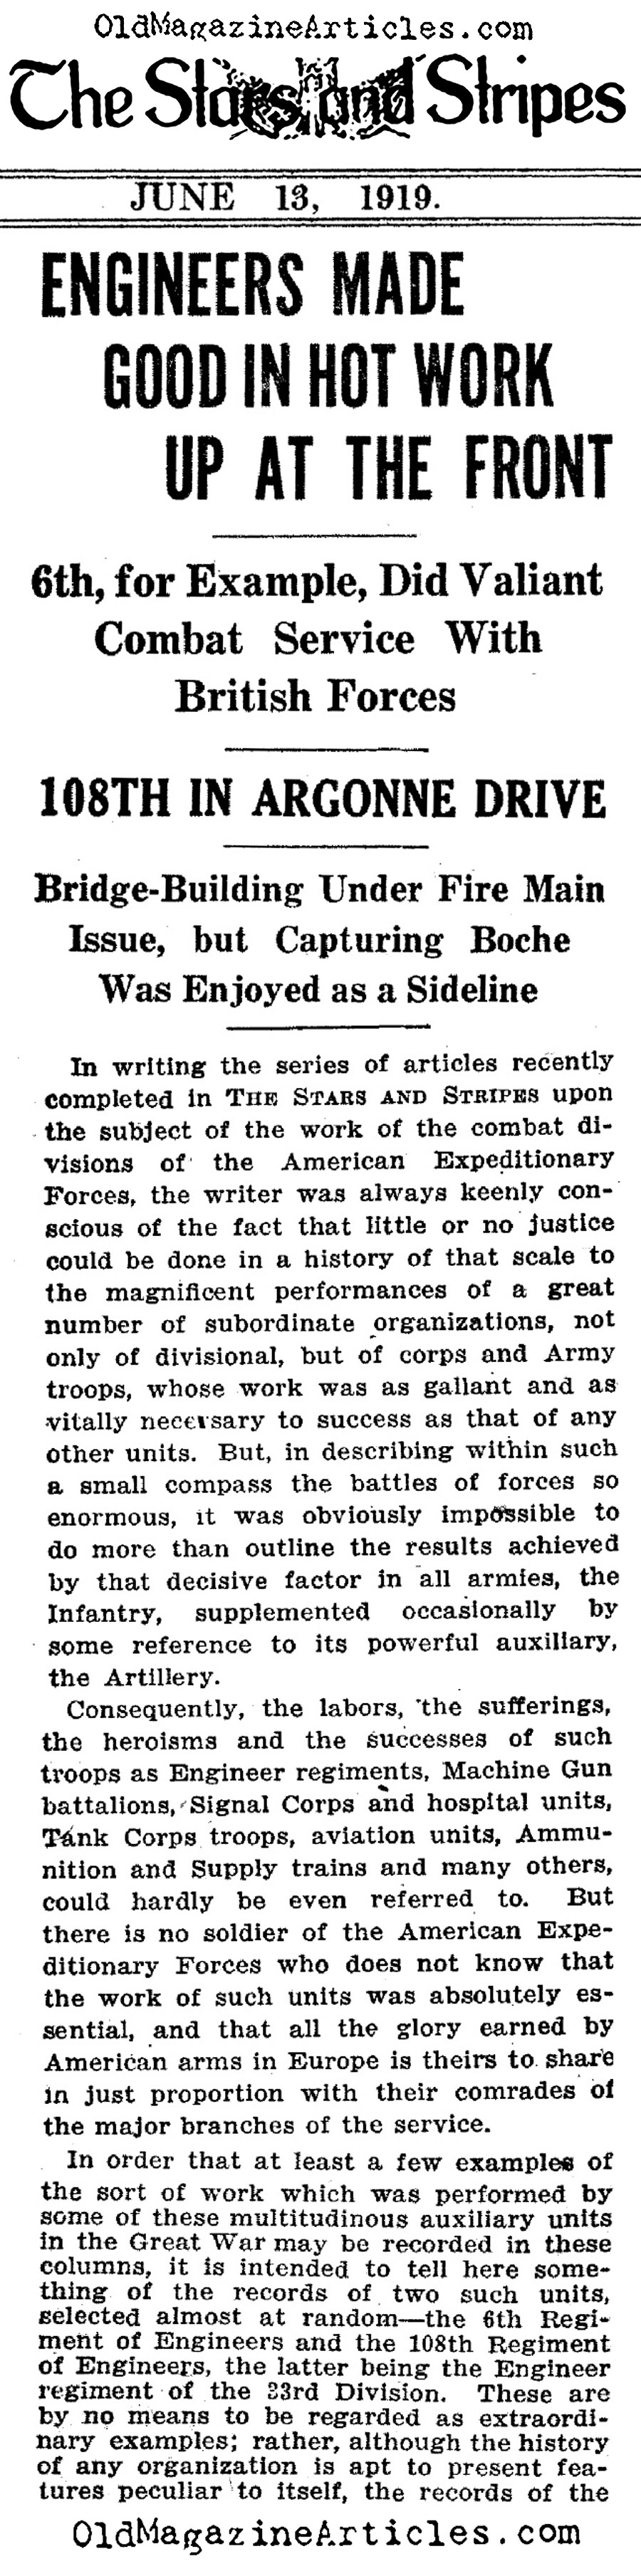 The U.S. Sixth Engineers and the 1918 March Offensive <BR>(The Stars and Stripes,1919)